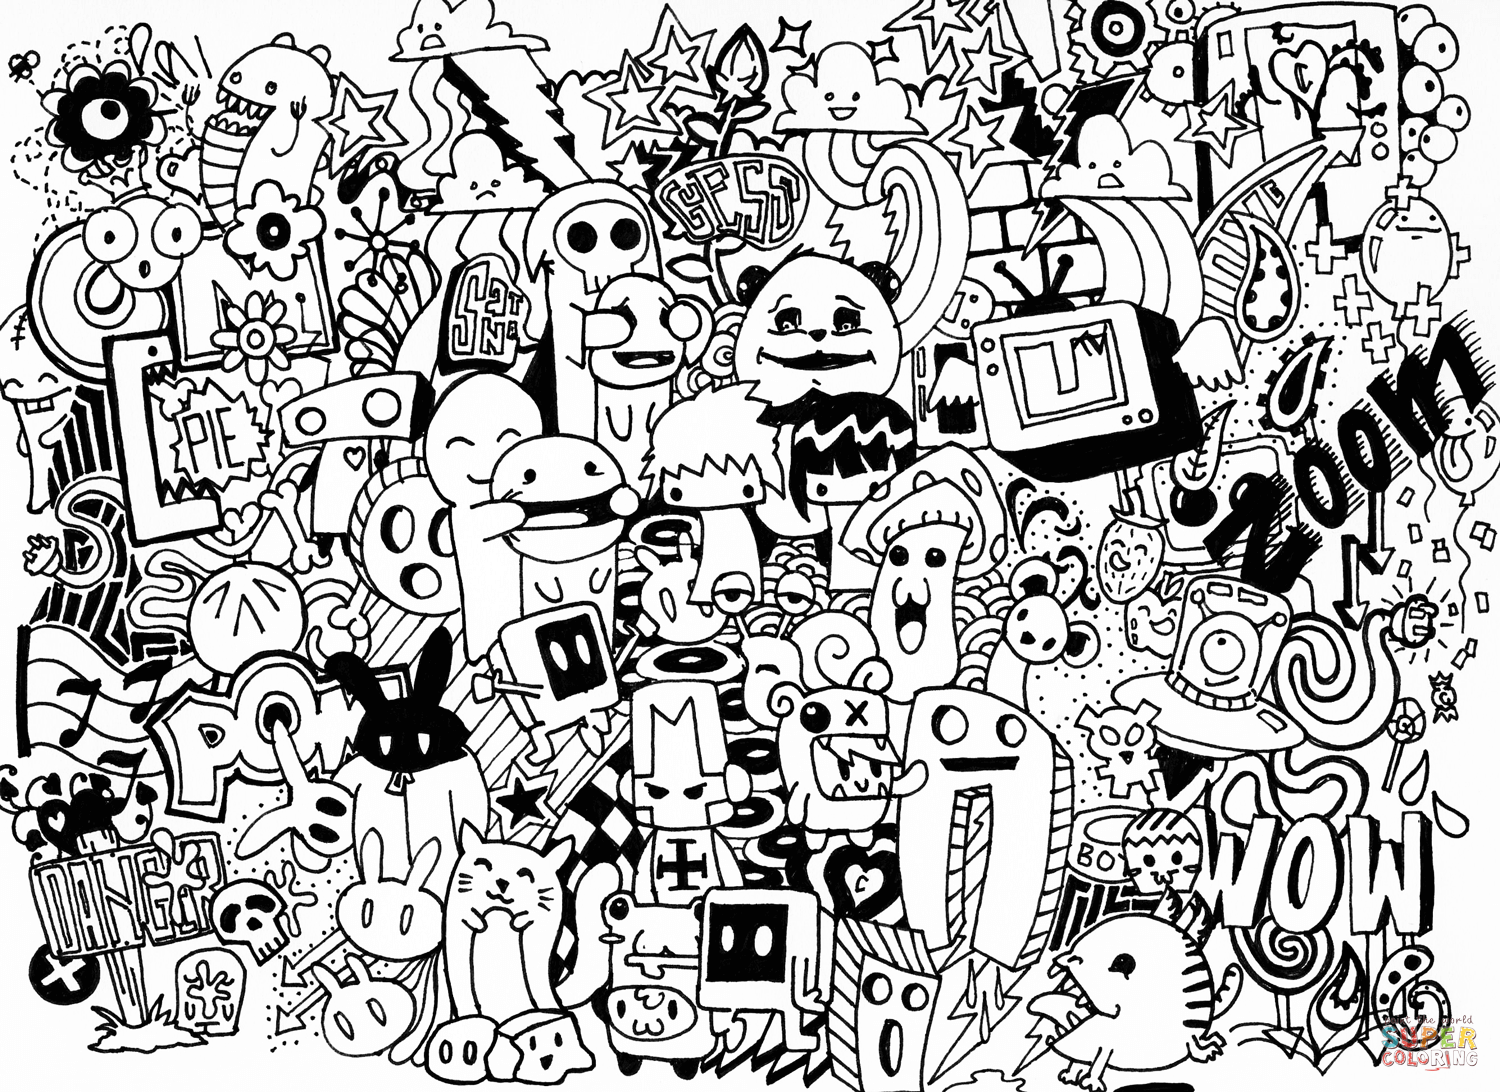 doodle art alley coloring pages doodle art alley quotes coloring pages doodle art christmas  doodle art alley coloring pages